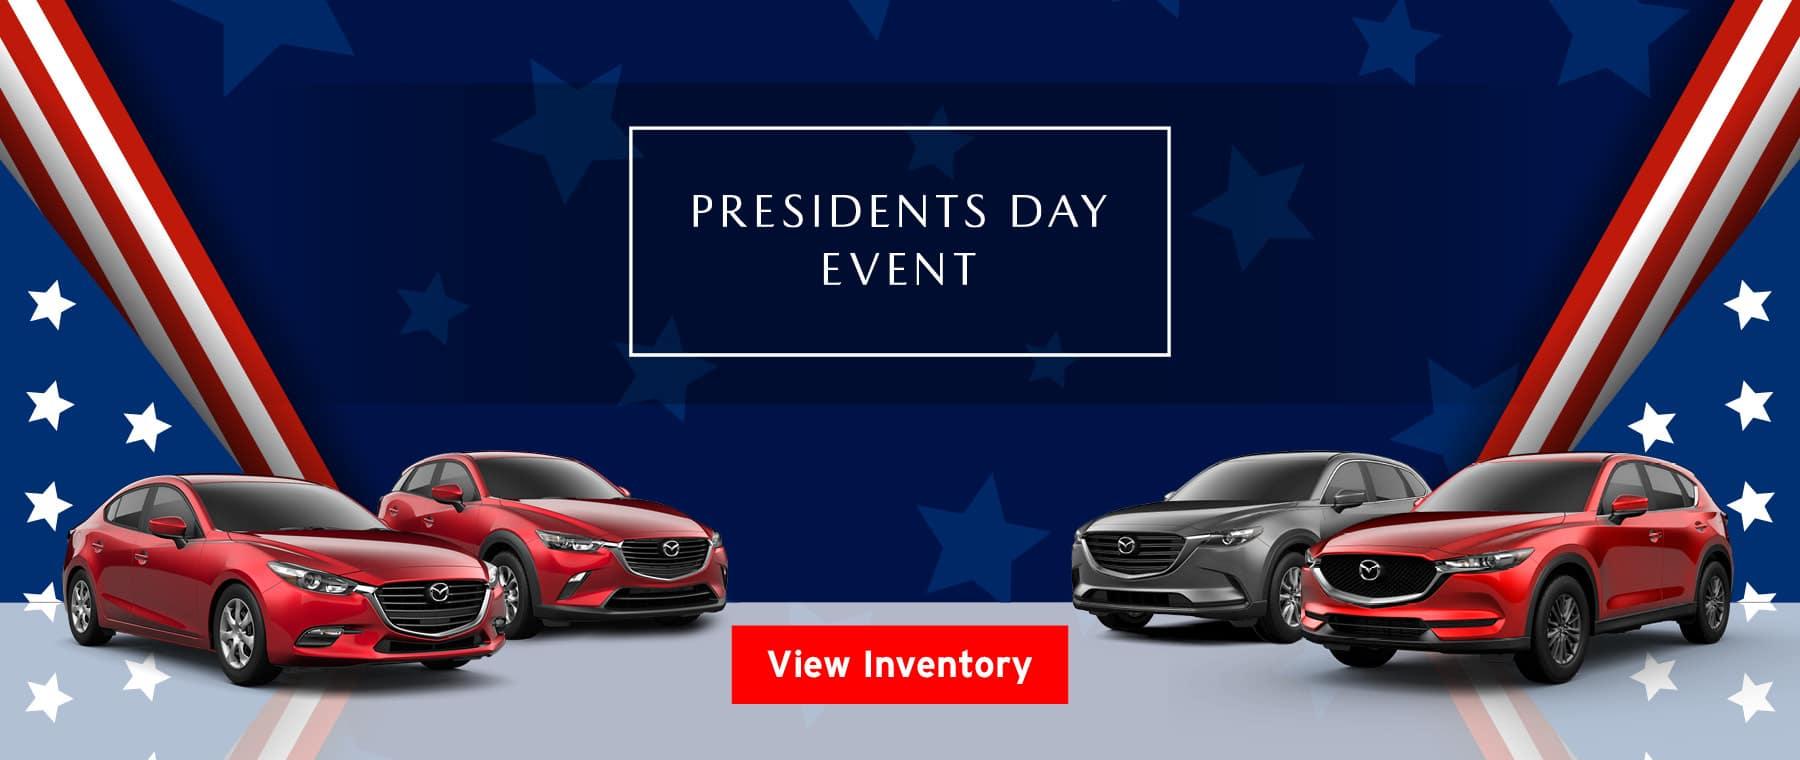 Presidents Day Event. View Inventory.